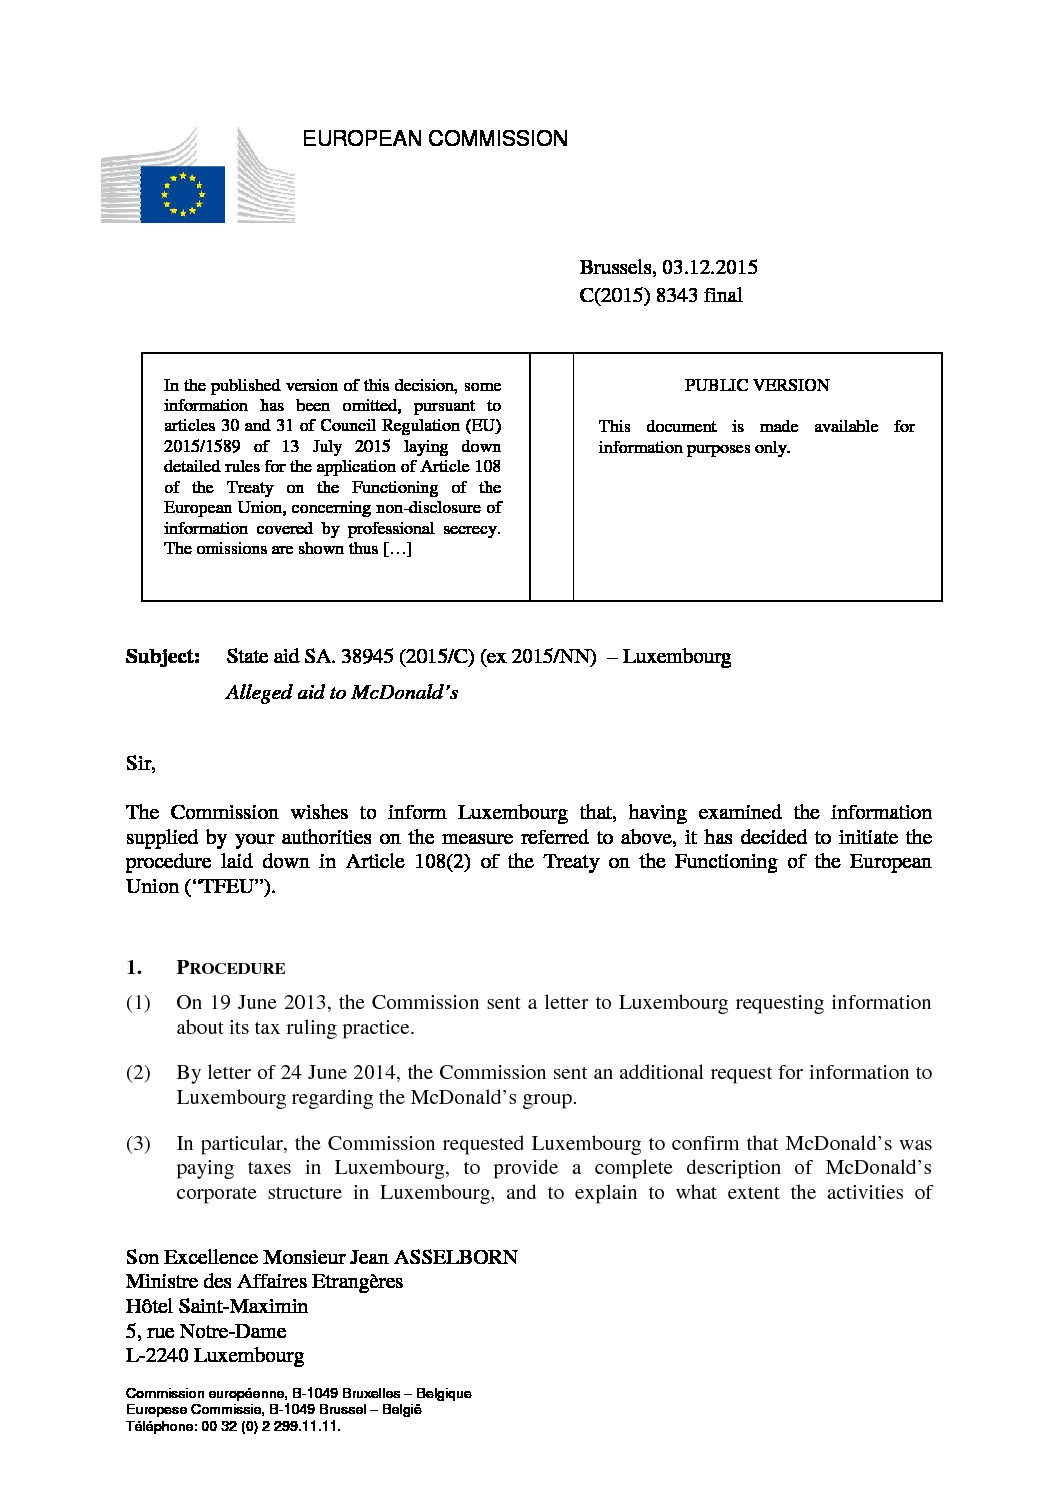 European Commission opens formal investigation into Luxembourg's tax treatment of McDonald's under EU state aid regulations, December 2015